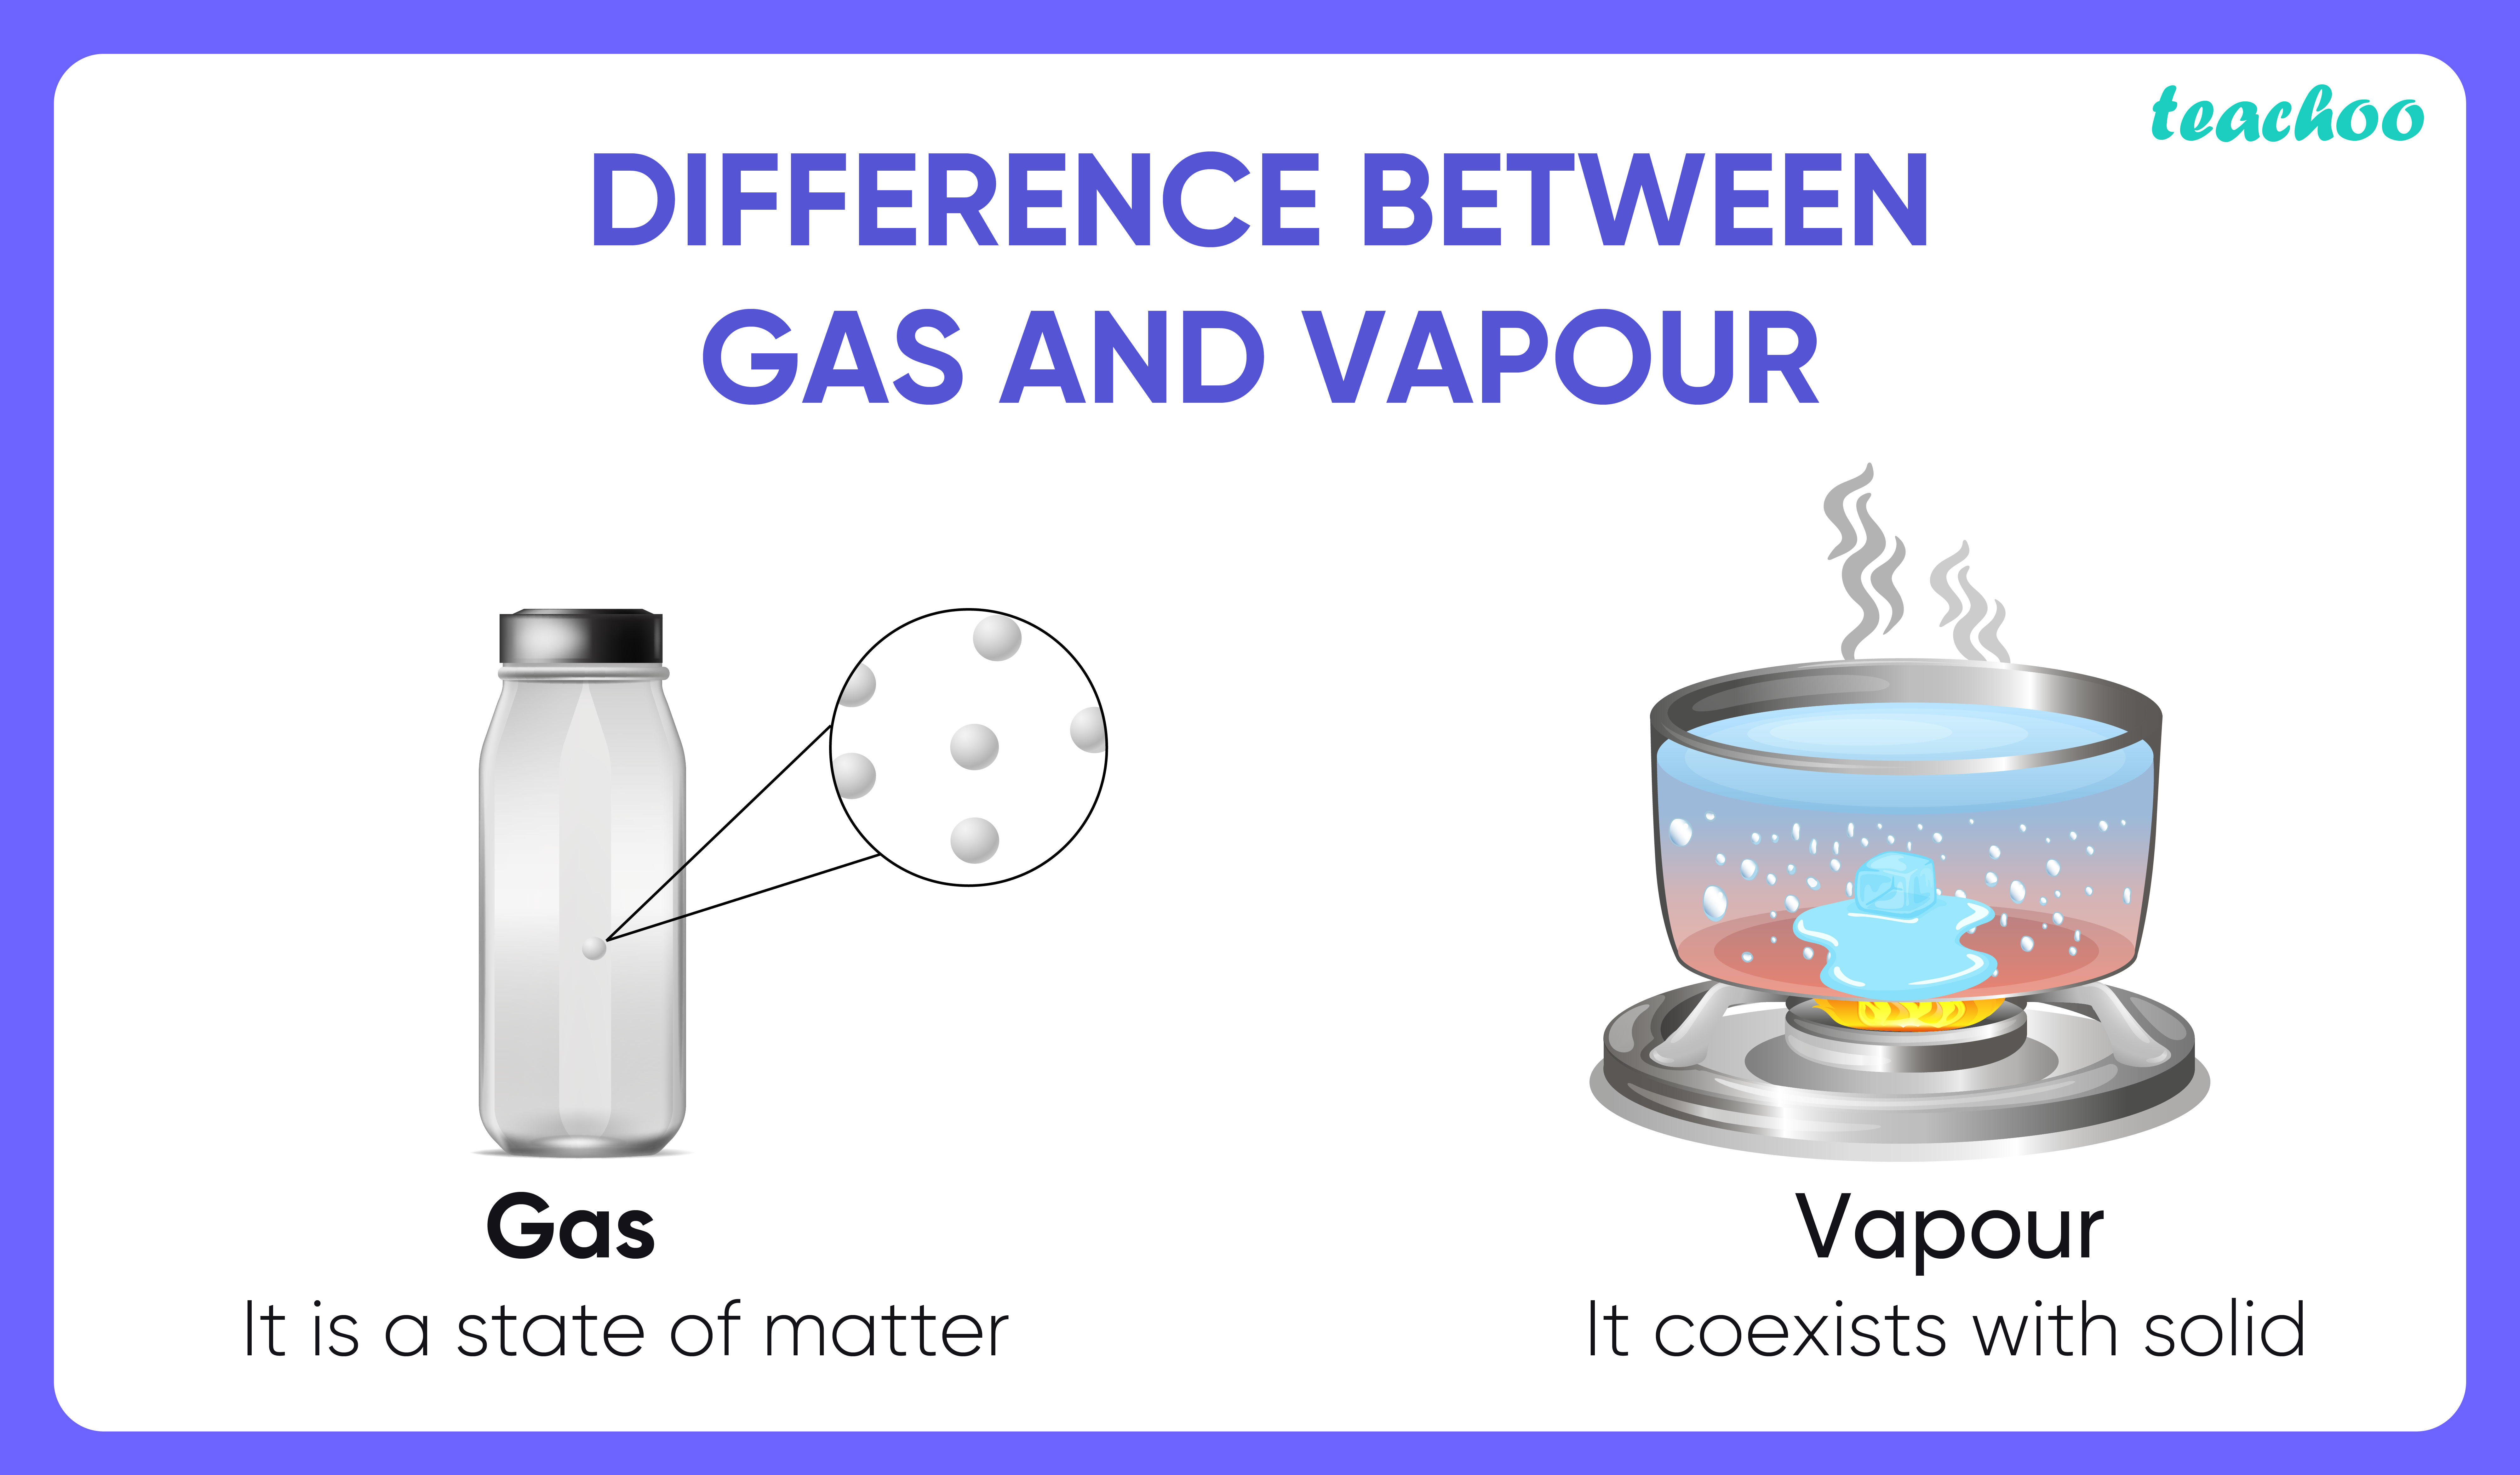 Difference between Gas and Vapour-Teachoo-01.jpg